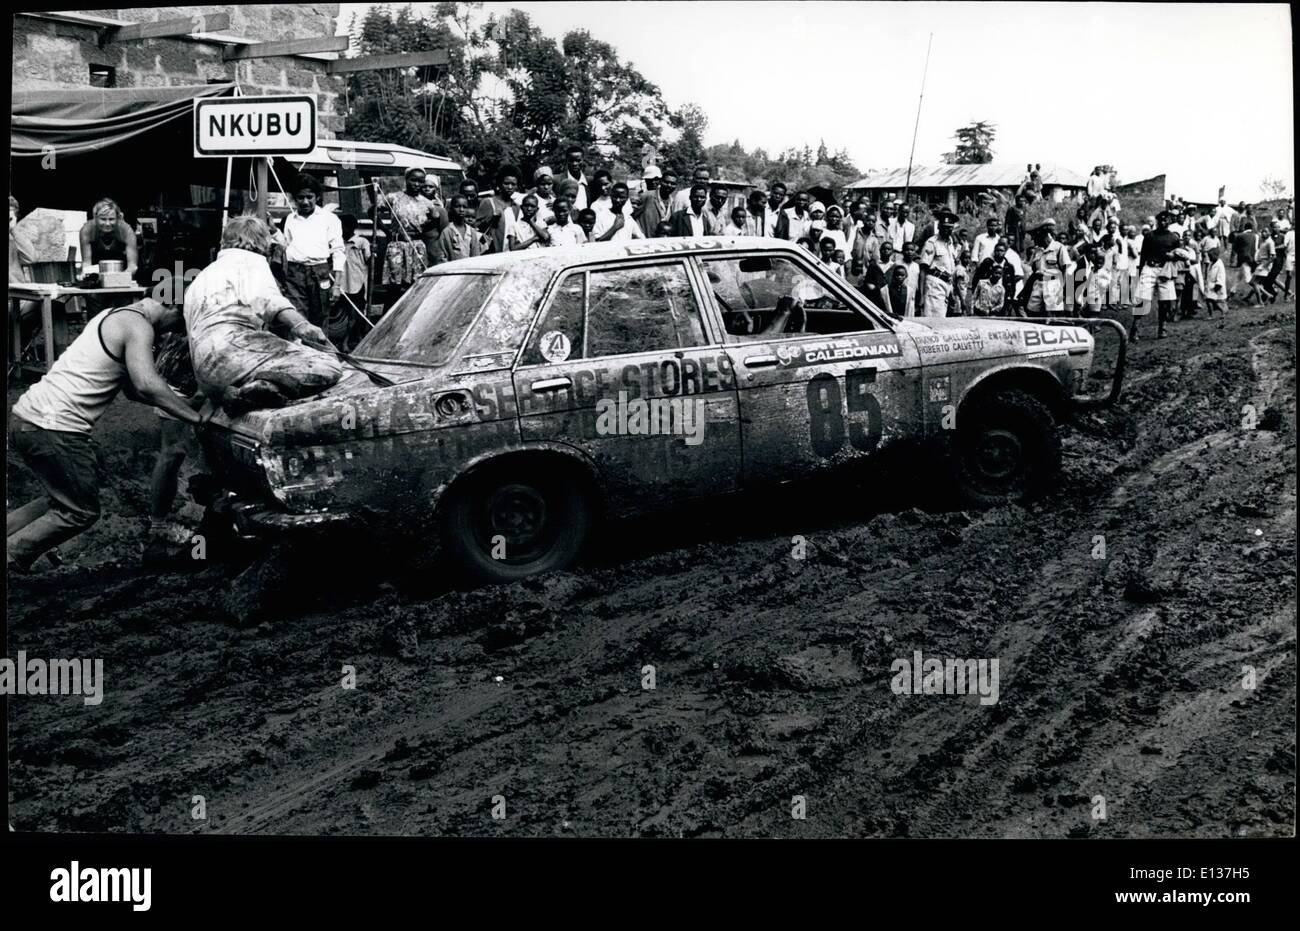 Feb. 29, 2012 - East African Safari Brawny muscles strain in an effort to extract the Ford Escort 1300 GT of Pat Tarrant and Brian Haworth out of mud that's as sticky as treacle. - Stock Image